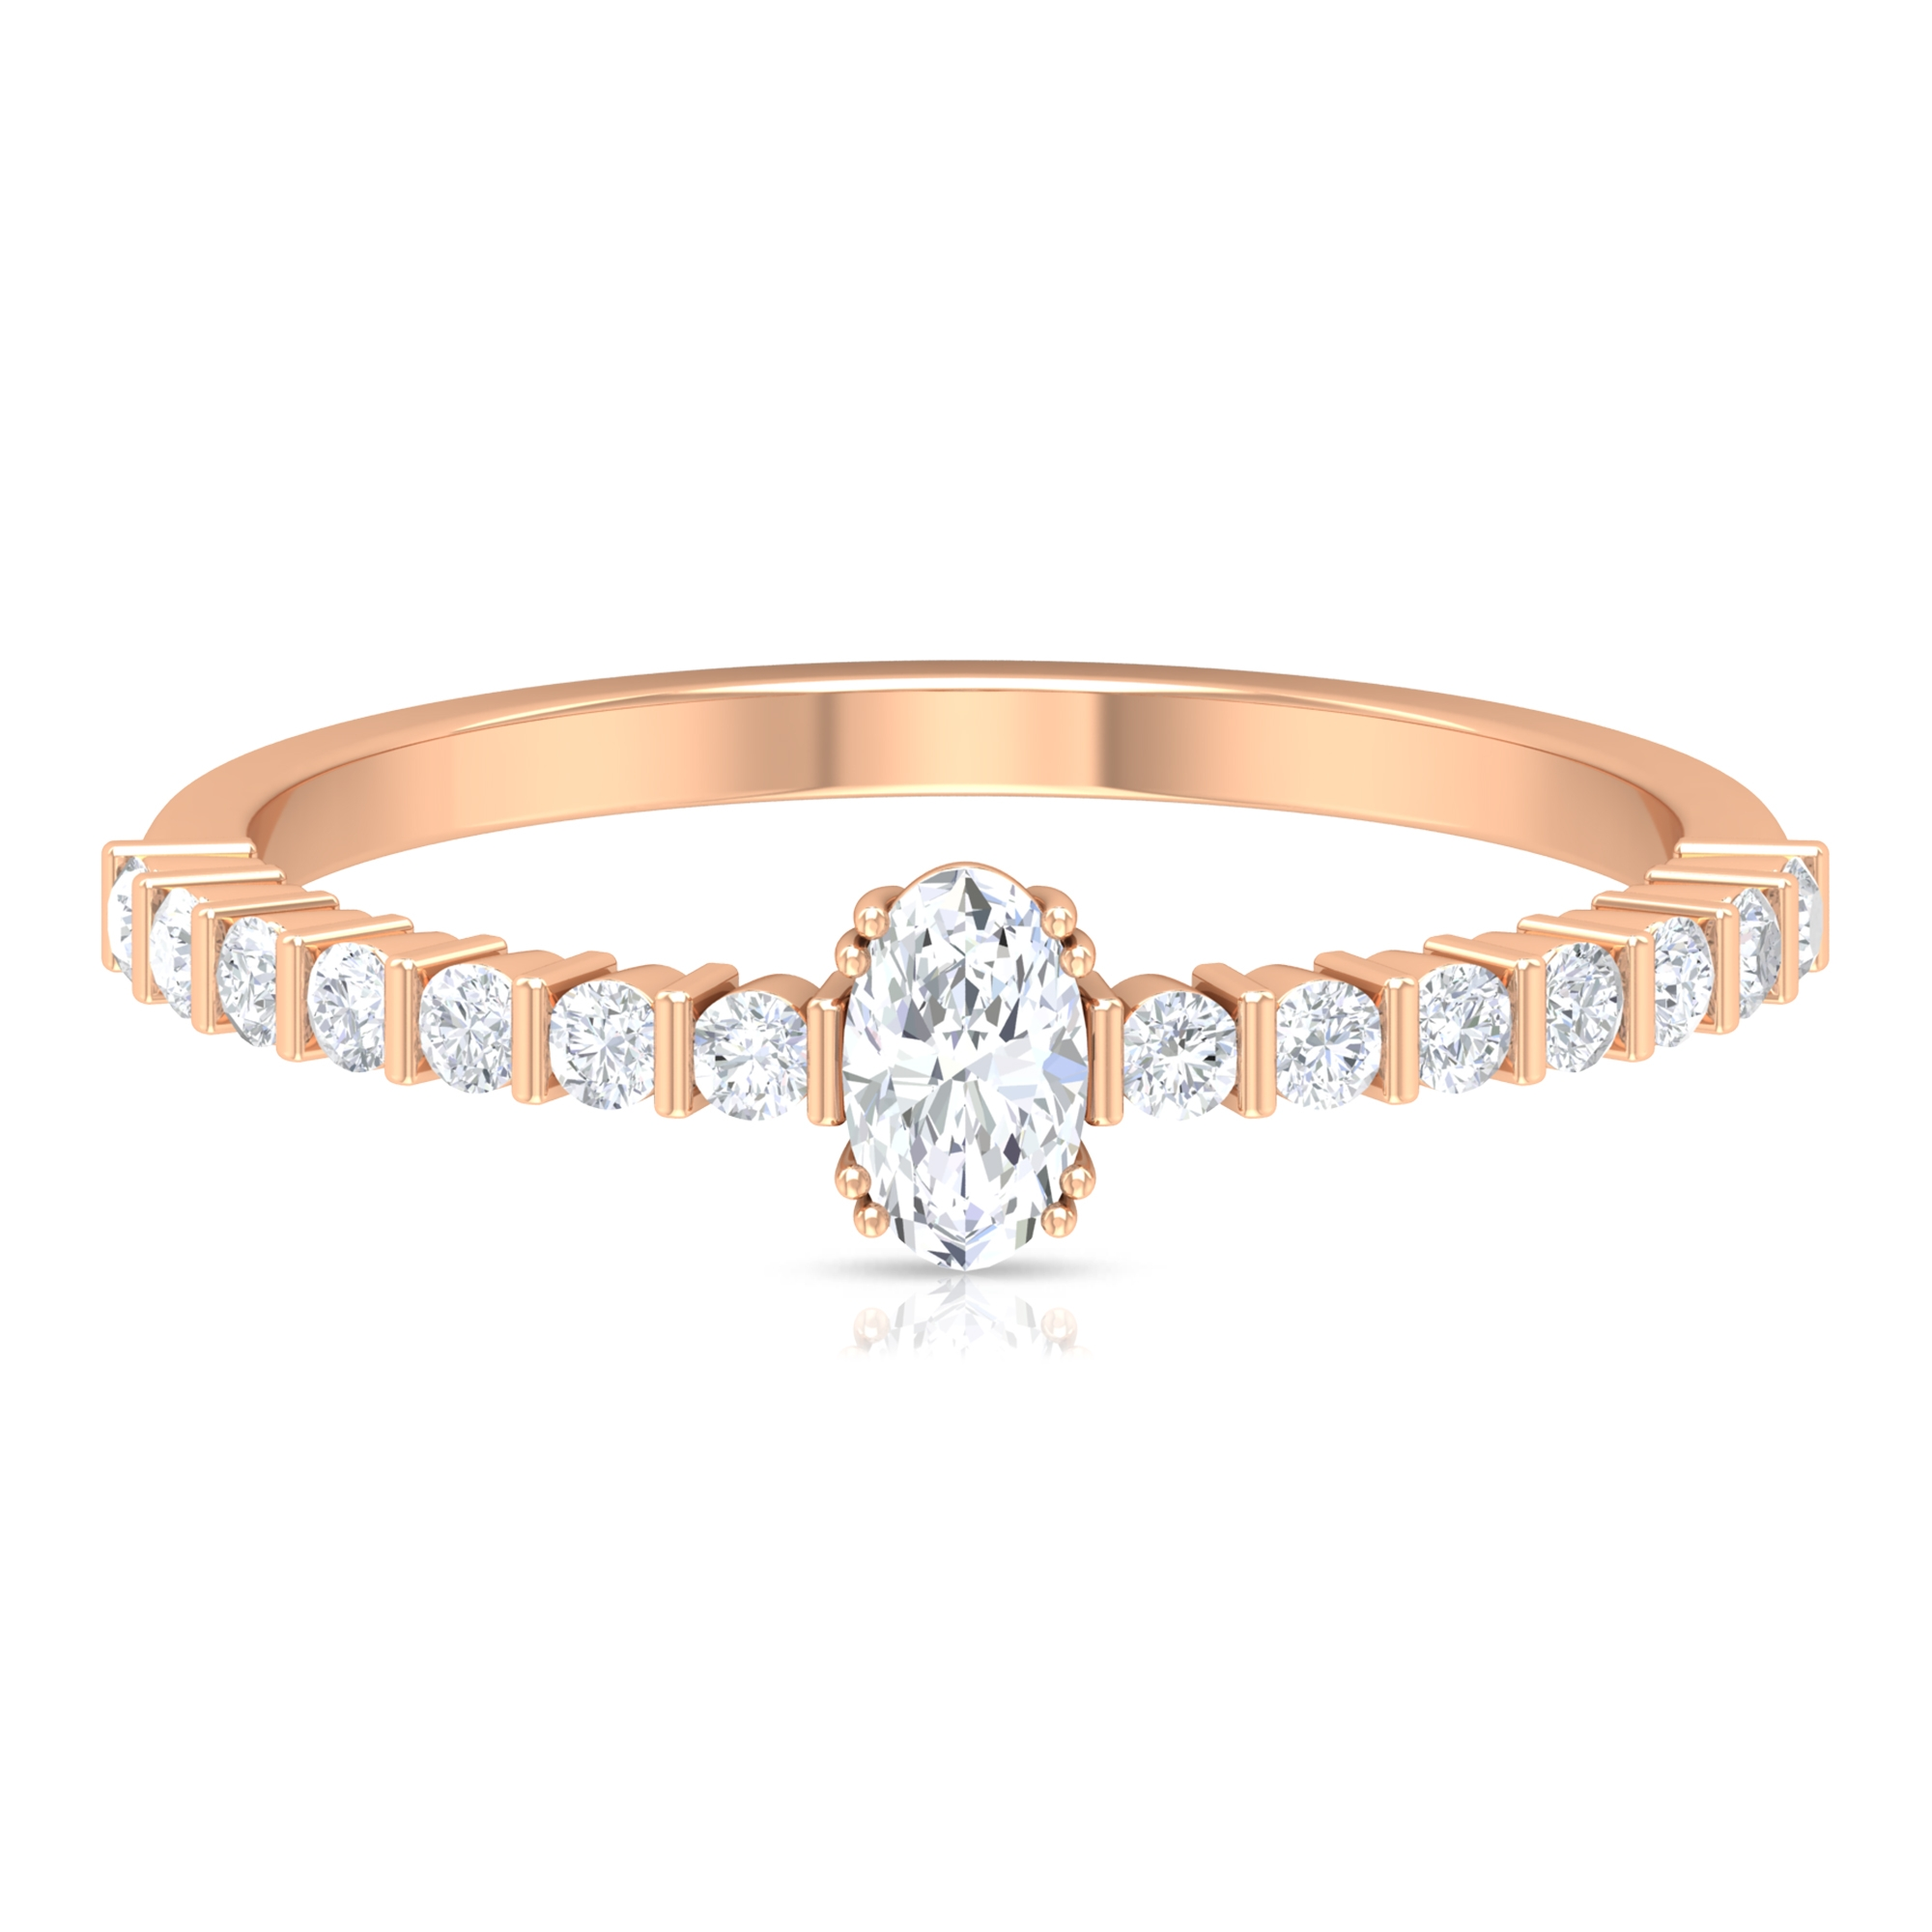 1/2 CT Oval Shape Solitaire Diamond Ring in Double Prong Setting with Bar Set Diamond